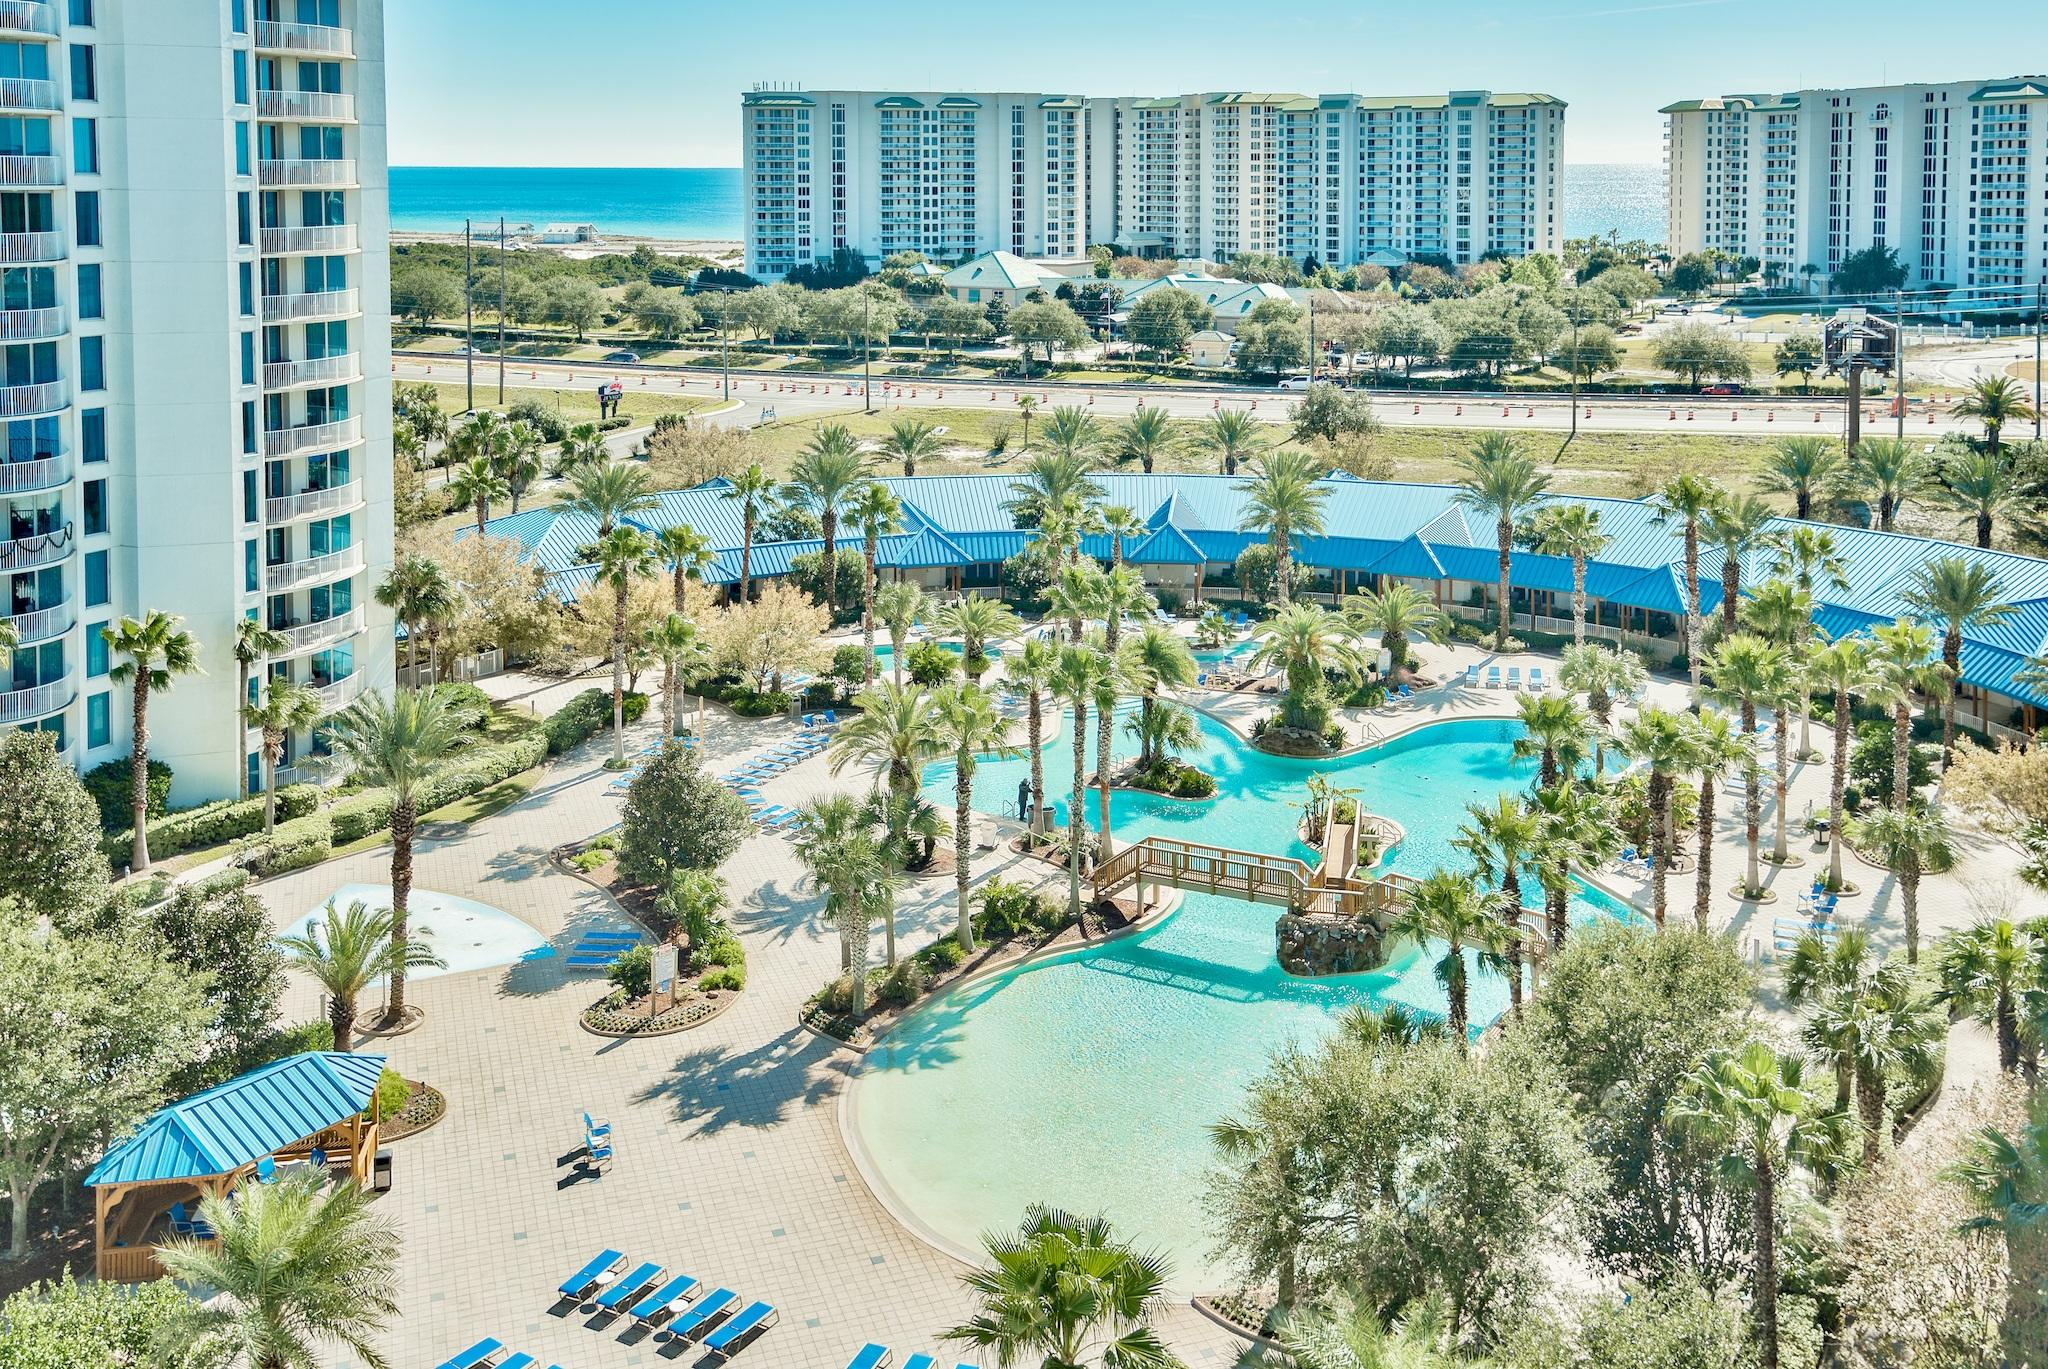 Gorgeous Gulf. pool, and bay views offered from this furnished 10th floor unit, full 2 bedroom unit! RENTAL PROJECTION IS ESTIMATED AT $36,275 A YEAR. Kitchen features granite countertops and maple cabinetry! Amenities at The Palms are first class. They include an expansive 11,000 SF lagoon pool with waterfall and spa, children's pool, beach tram, playground and splash pool, lighted tennis and basketball courts, huge fitness center, and covered protected parking. Also on site is the conference center, office center, and reception desk. THE ASSOCIATION FEES INCLUDE ALL UTILITIES, INCLUDING ELECTRICITY, WATER, CABLE, INTERNET, AND LOCAL PHONE SERVICE. HOA fees are $2,903.08/quarterly. In addition to the HOA fees,owner's pay a $75 reservation whenever the unit is rented. Buyer to verify all info.